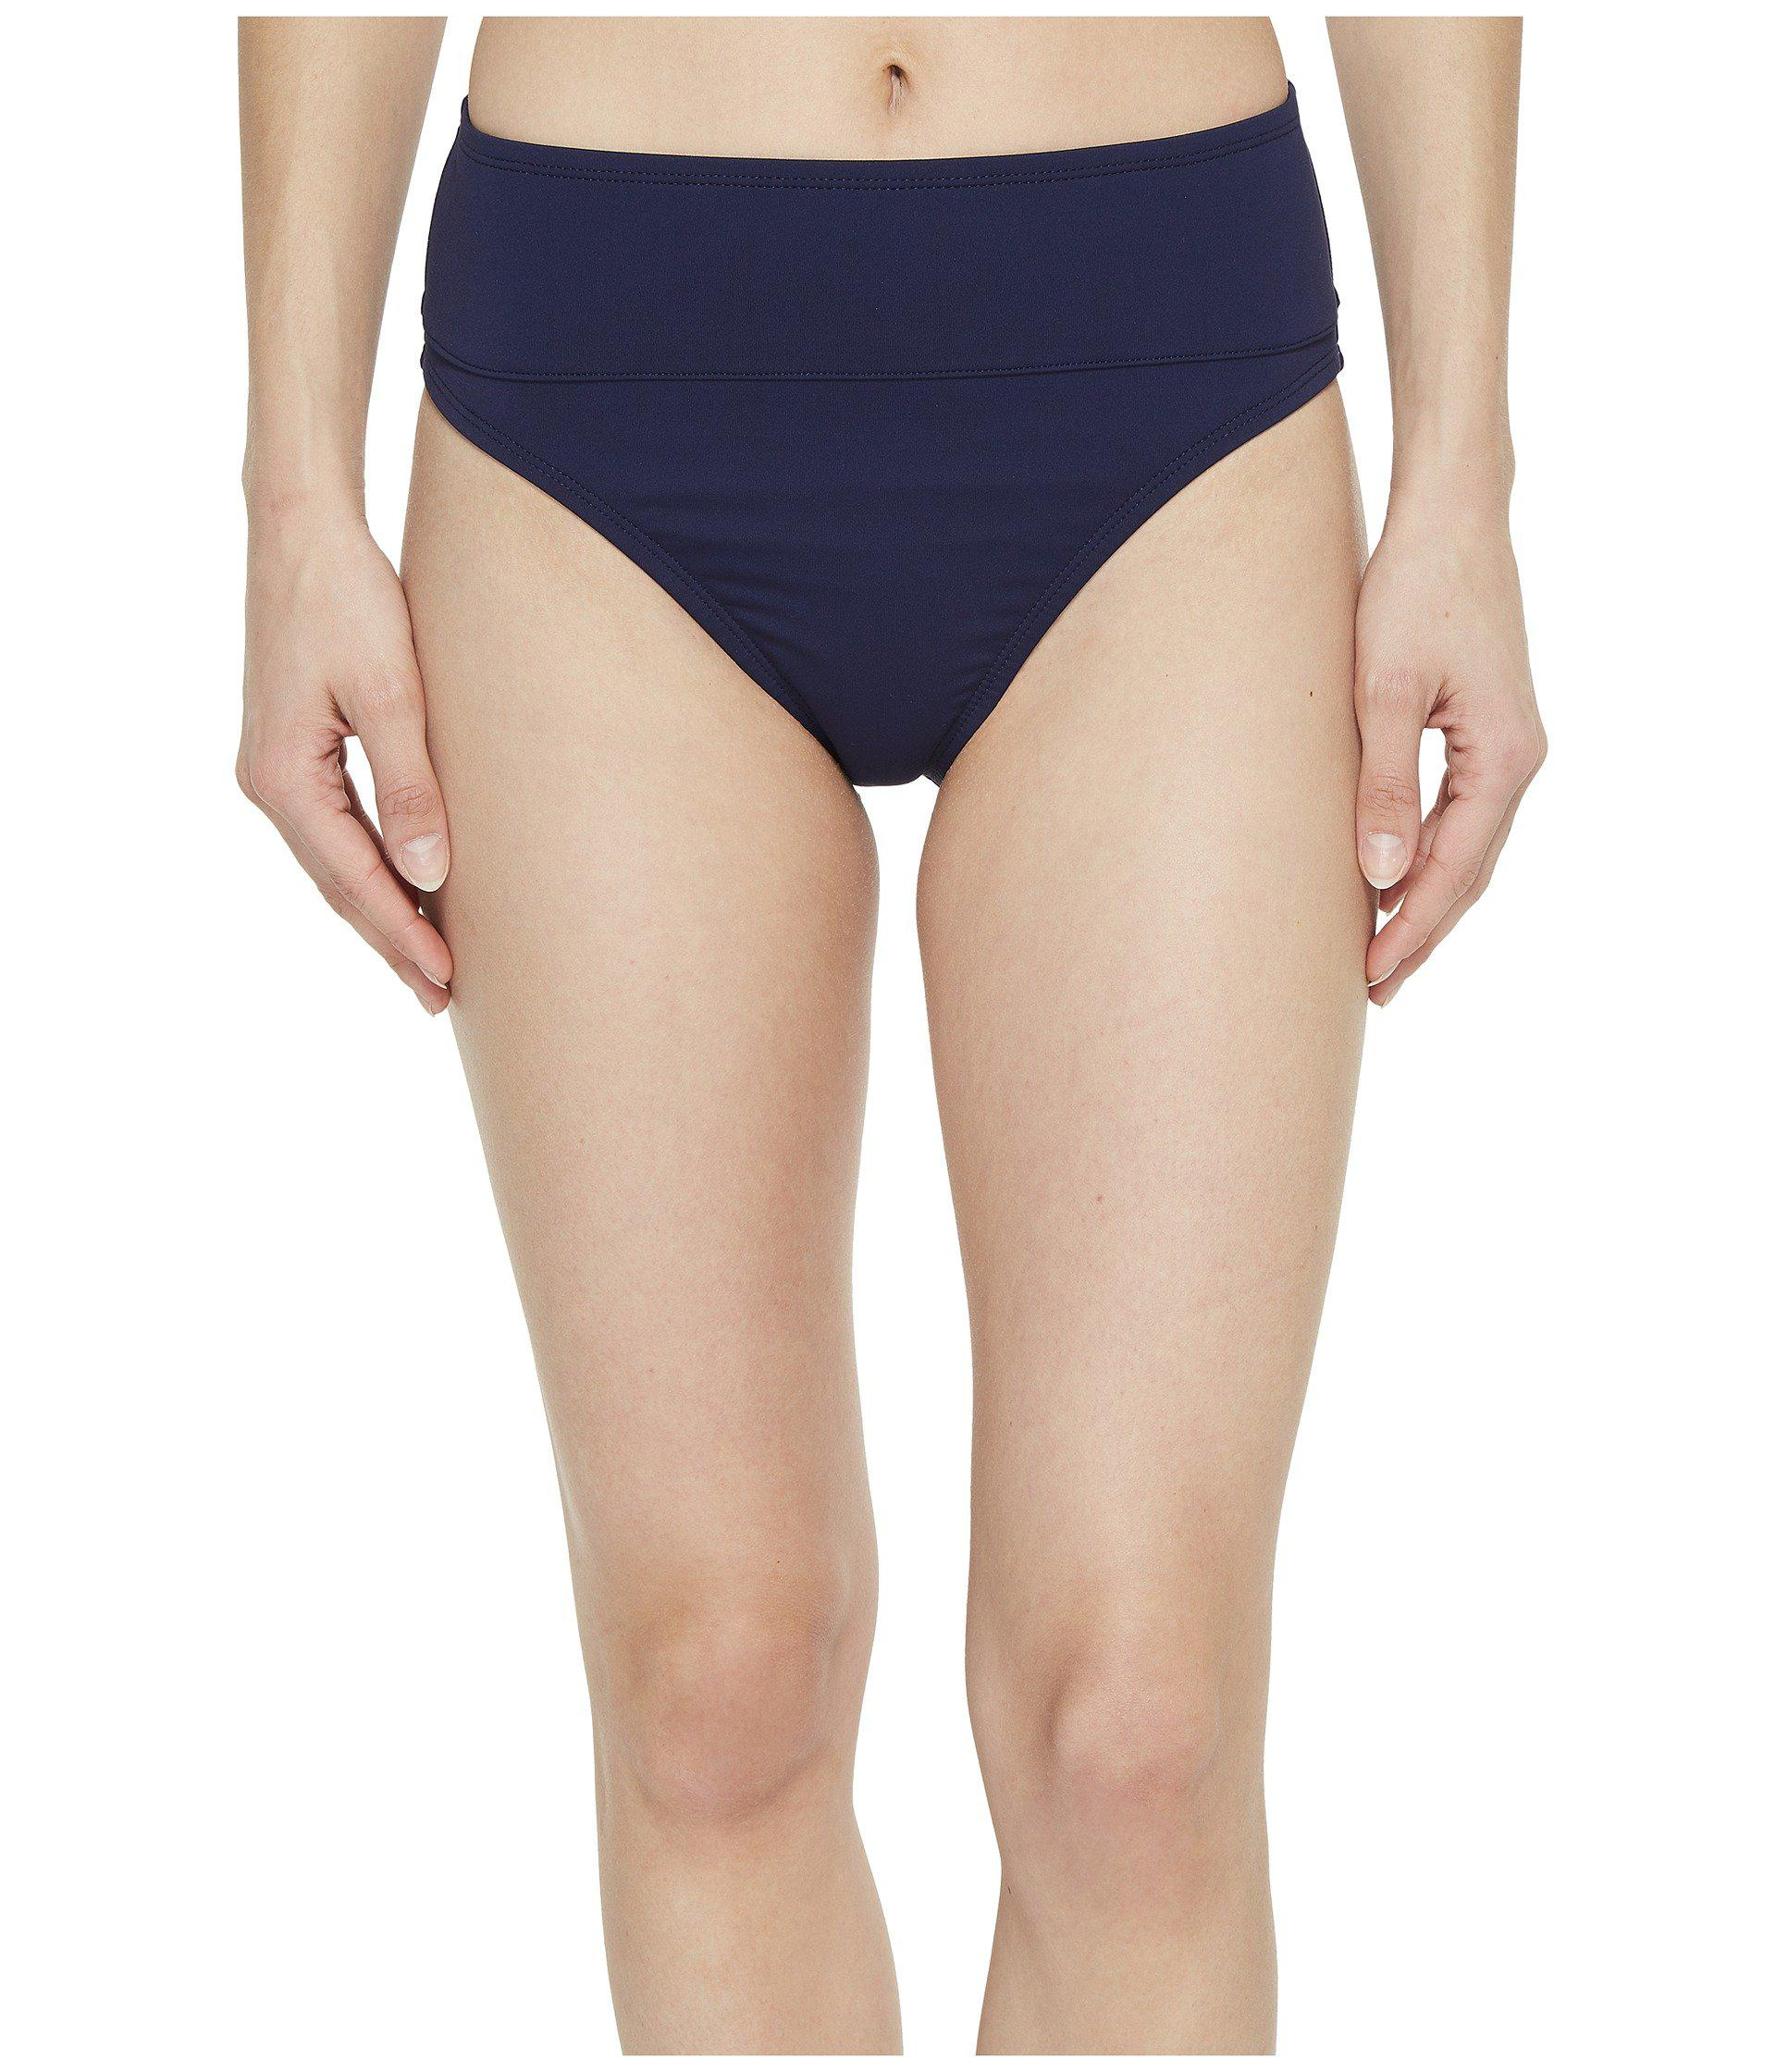 8e32b9a6ff Gallery. Previously sold at  Zappos · Women s High Waisted Bikini Bottoms  ...